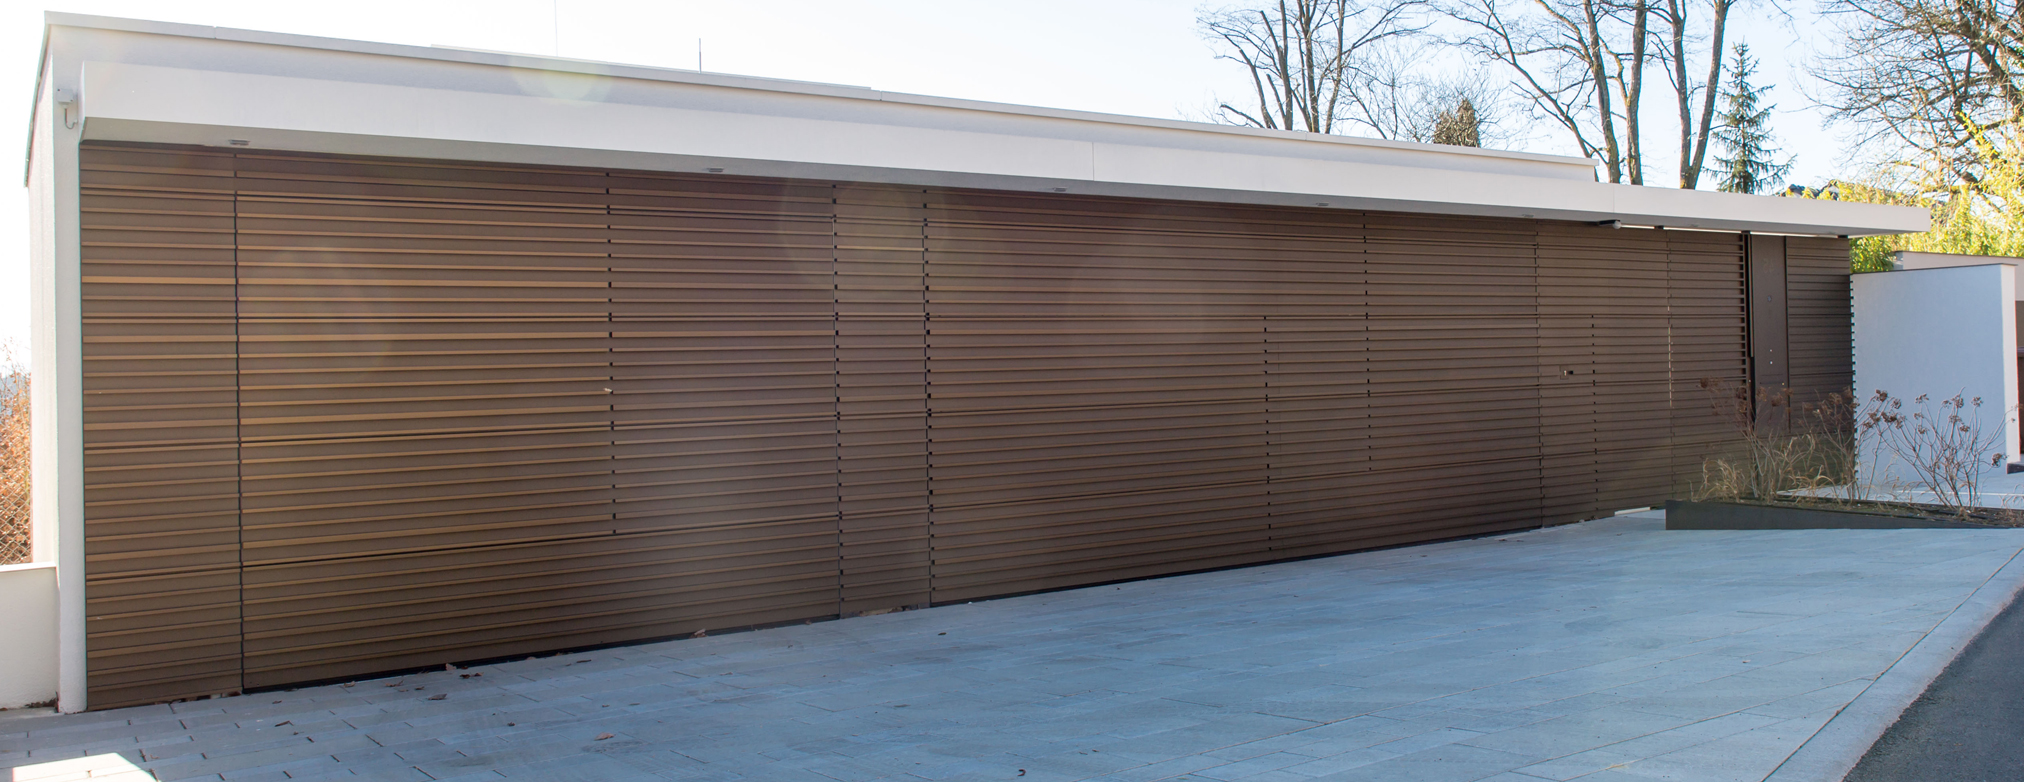 Carriage House Garage Door, Carriage House, Custom Wood Door, Fencing, Faux  Wood